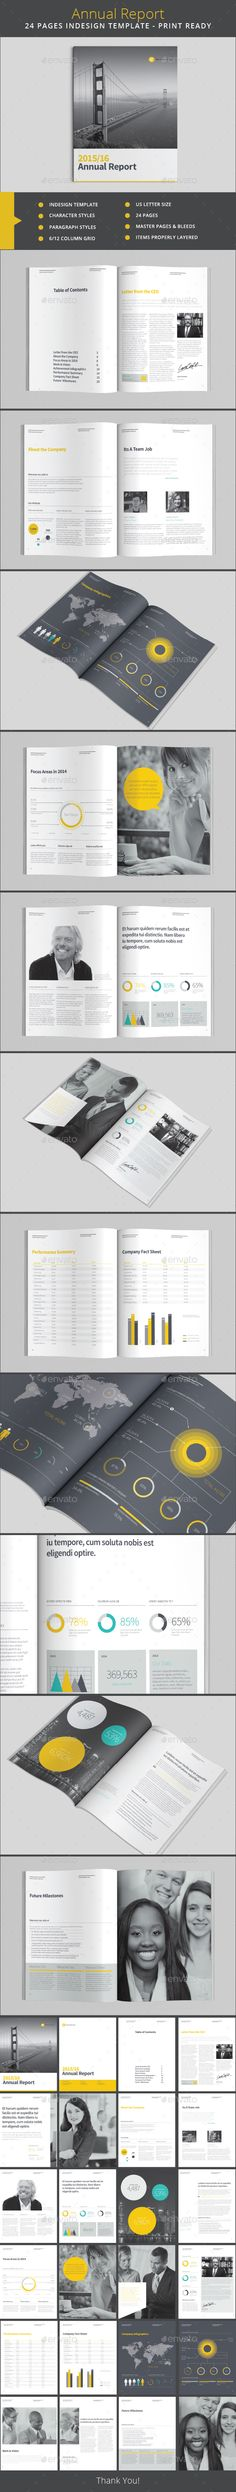 Annual Report Template #design Download: http://graphicriver.net/item/annual-report-template/13308774?ref=ksioks